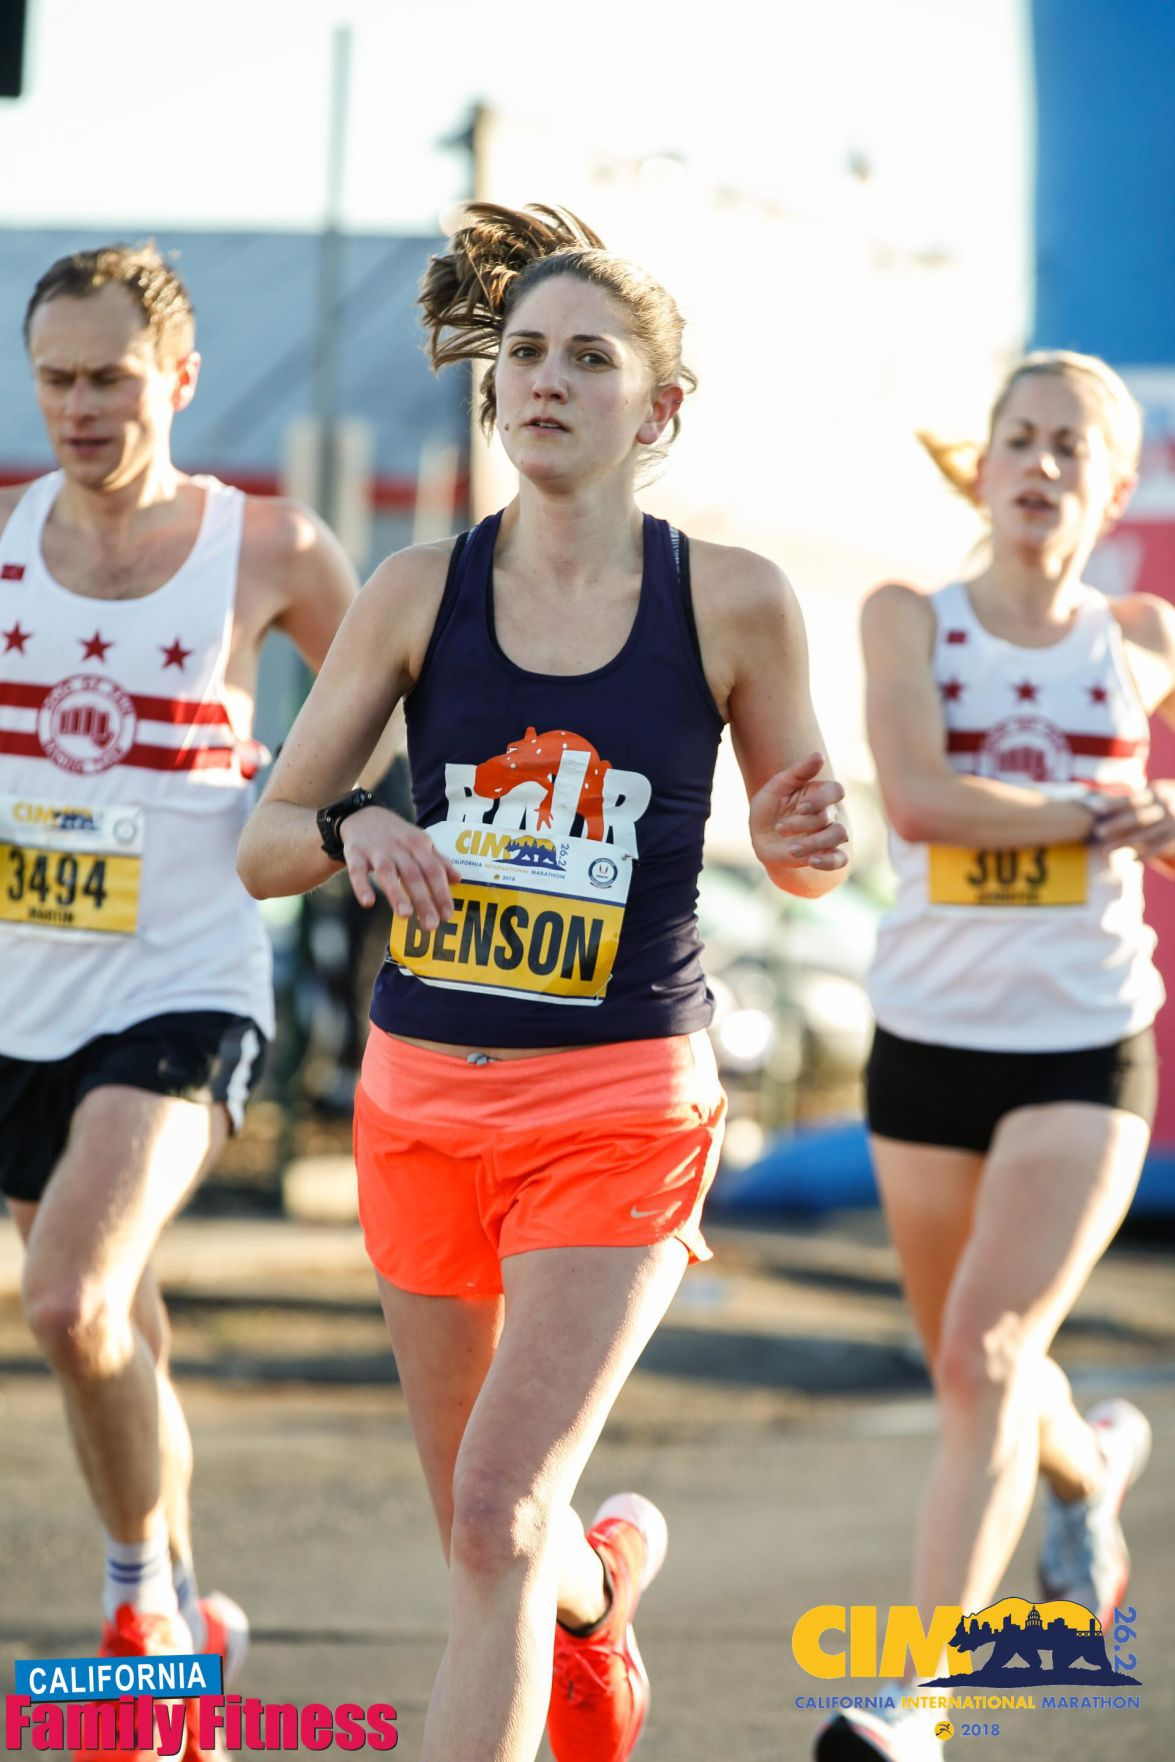 Chelsea Benson is one of three runners with local ties vying to make the olympics